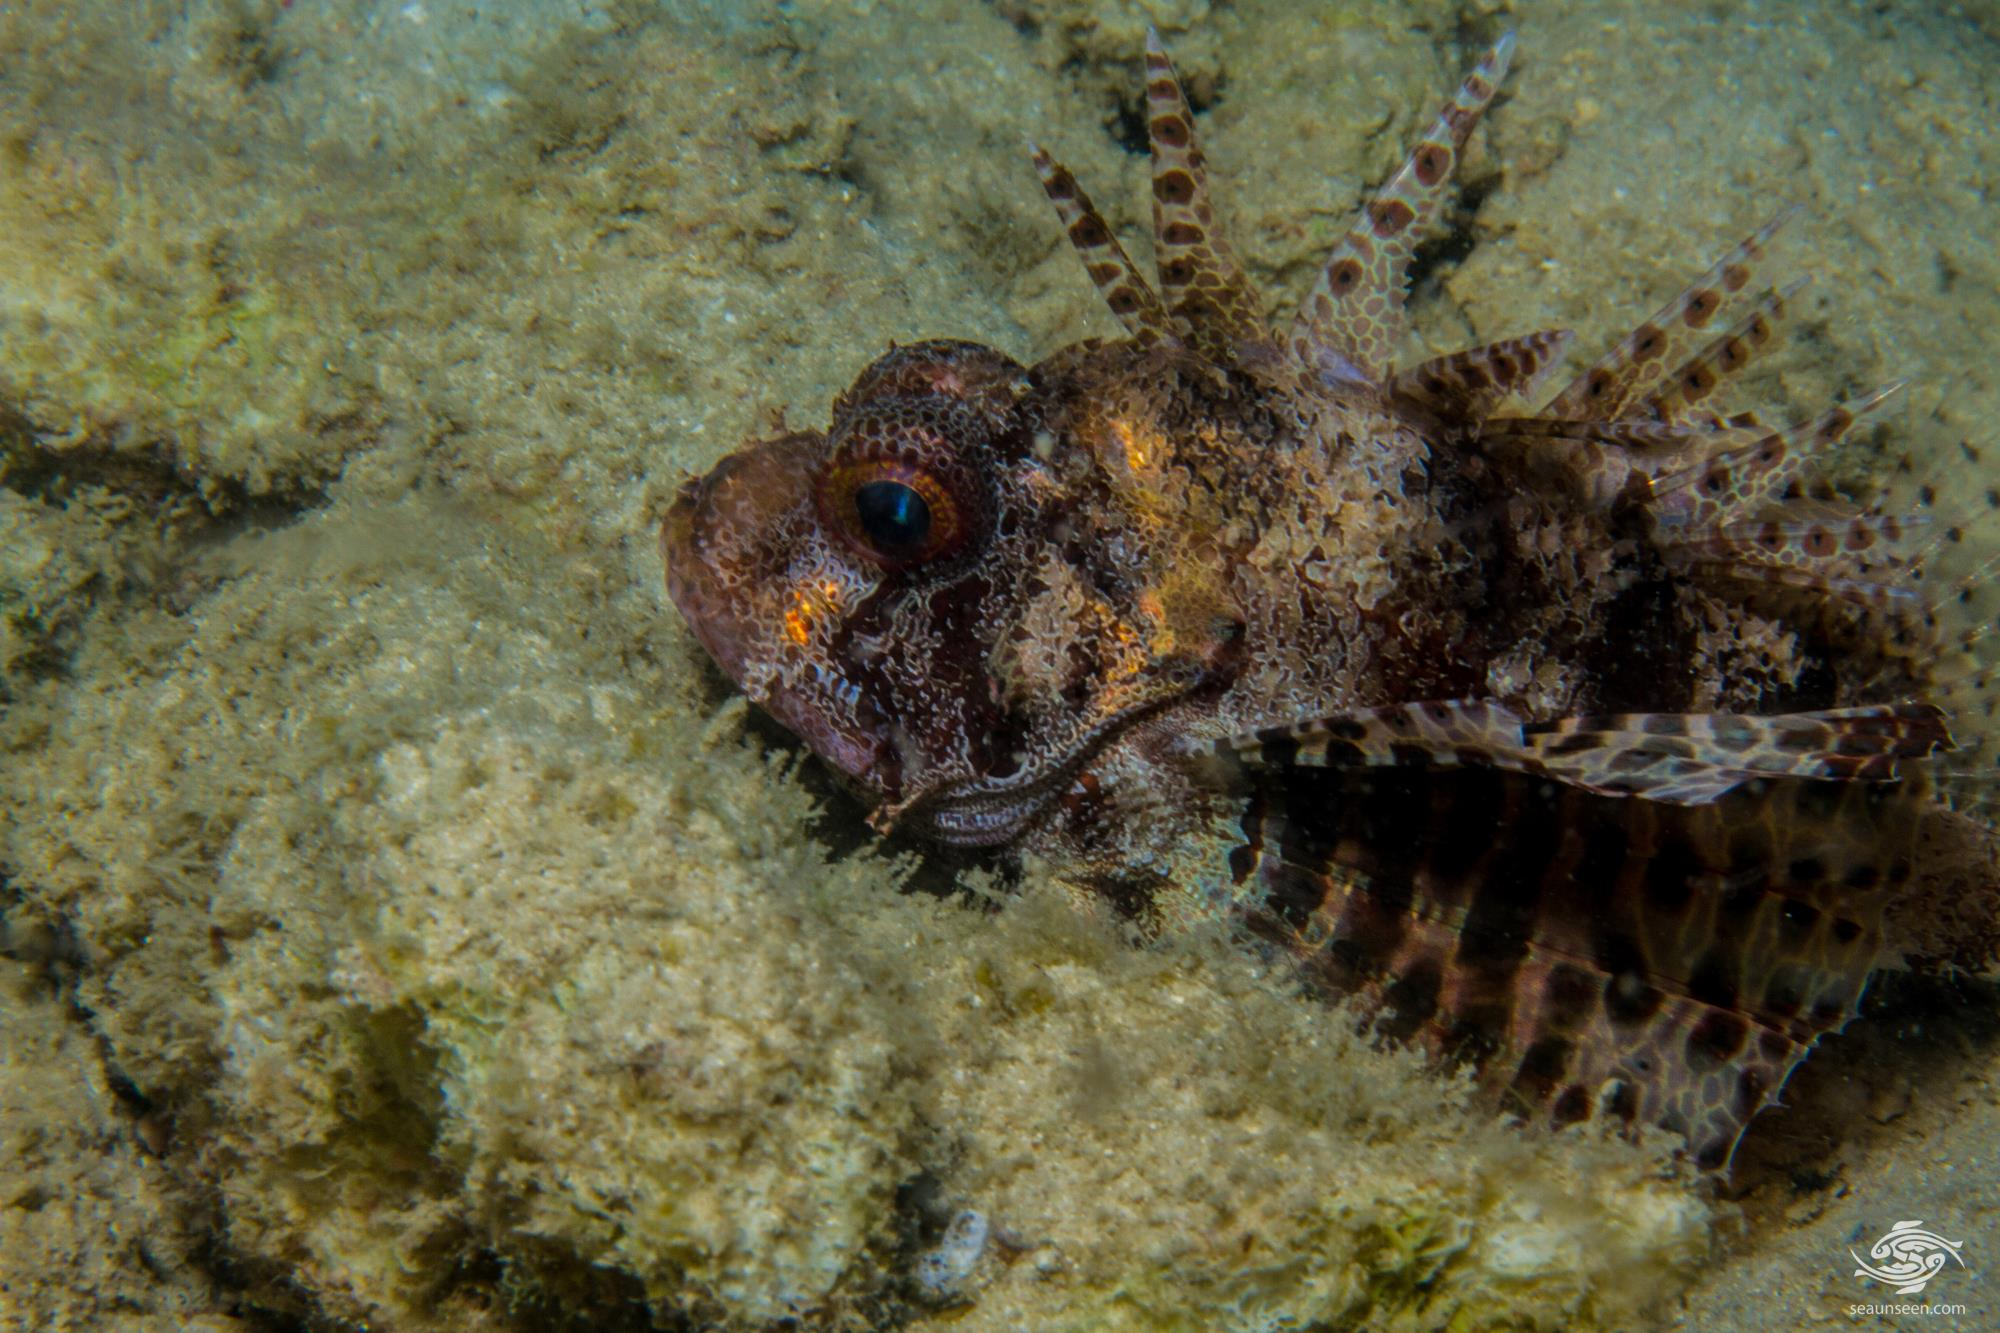 Fuzzy Dwarf Lionfish(Dendrochirus brachypterus) is also called the Shortfin Lionfish, the shortfin turkeyfish and the Dwarf Lionfish